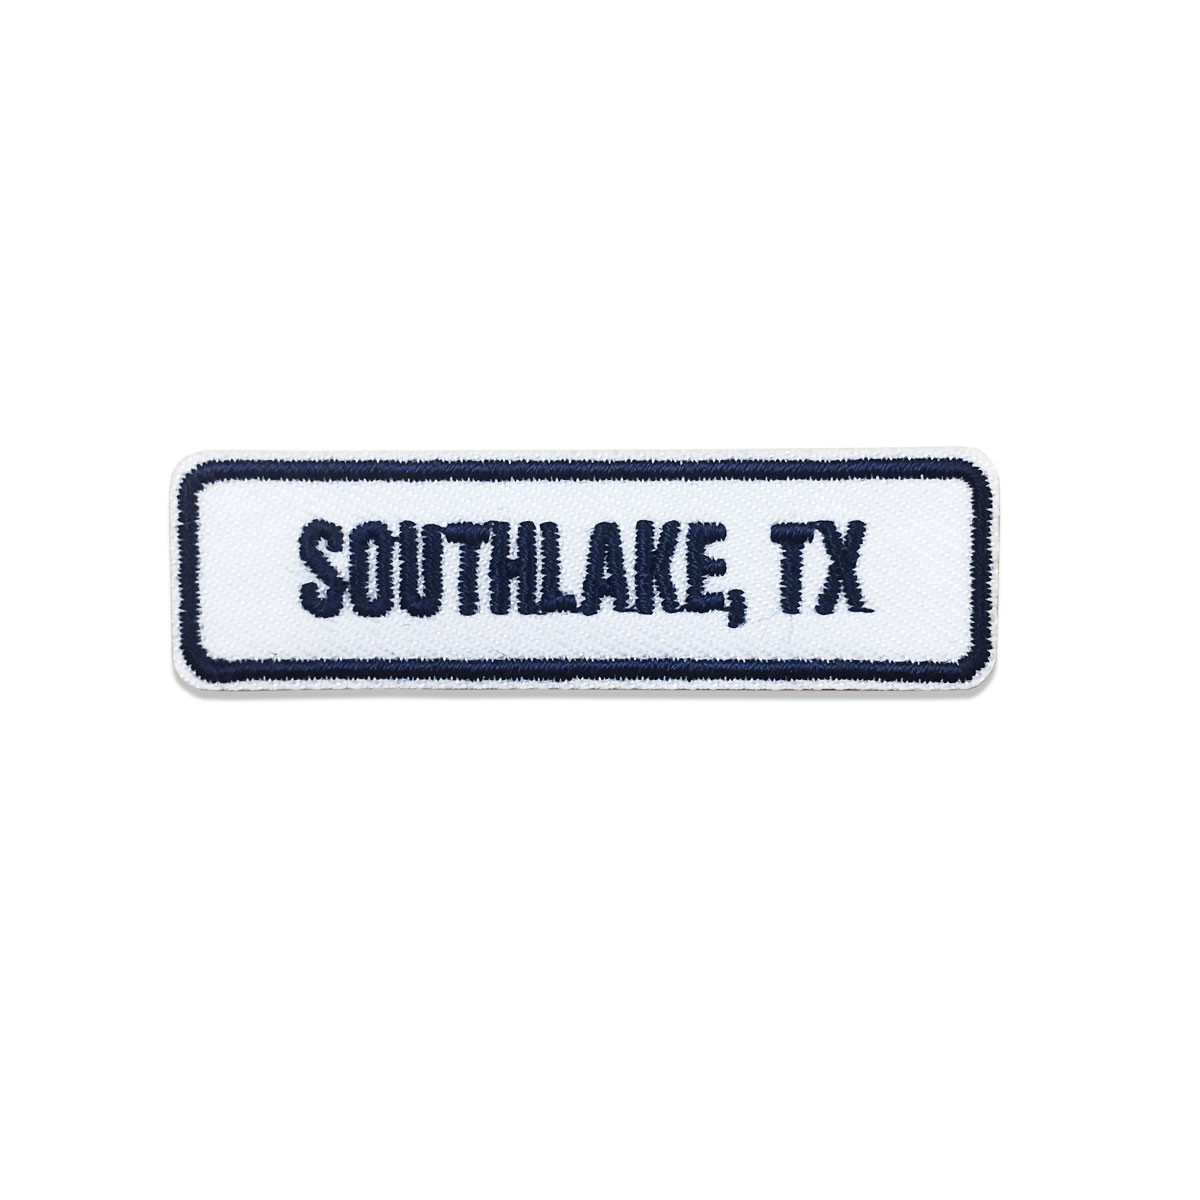 Southlake, TX Rocker Patch